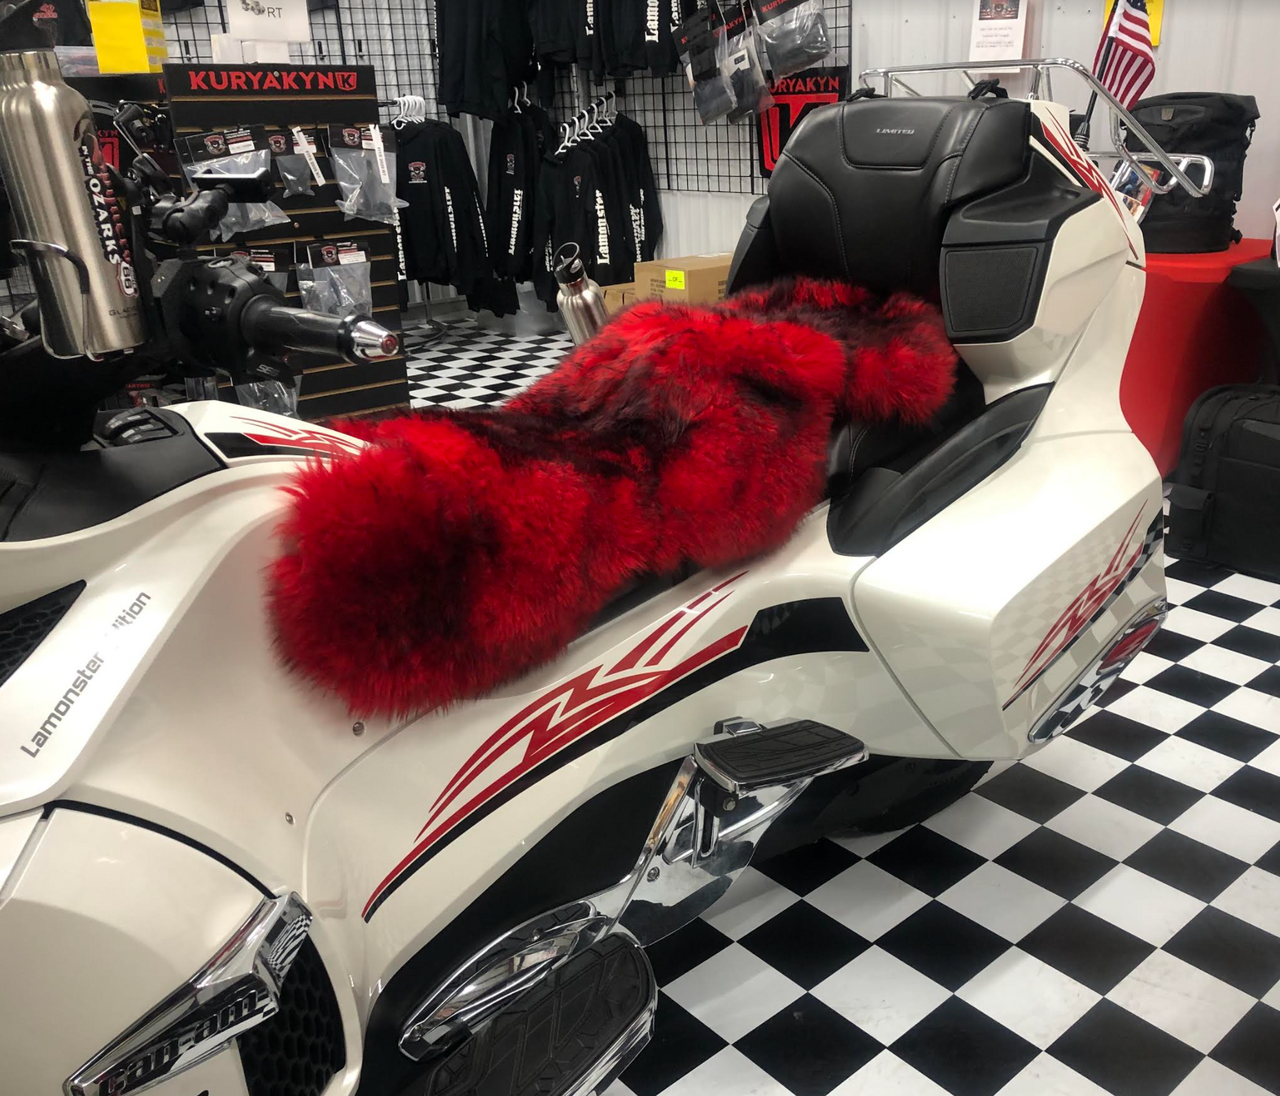 Misty Mountain Sheepskin Seat Cover (Full Seat Cover) (2010 - 2019 RT/RT-S/RT-LTD) (MM-4402-R-BLK) (RED with BLACK tips)  Shown on a 2014 Can Am Spyder RT-LTD